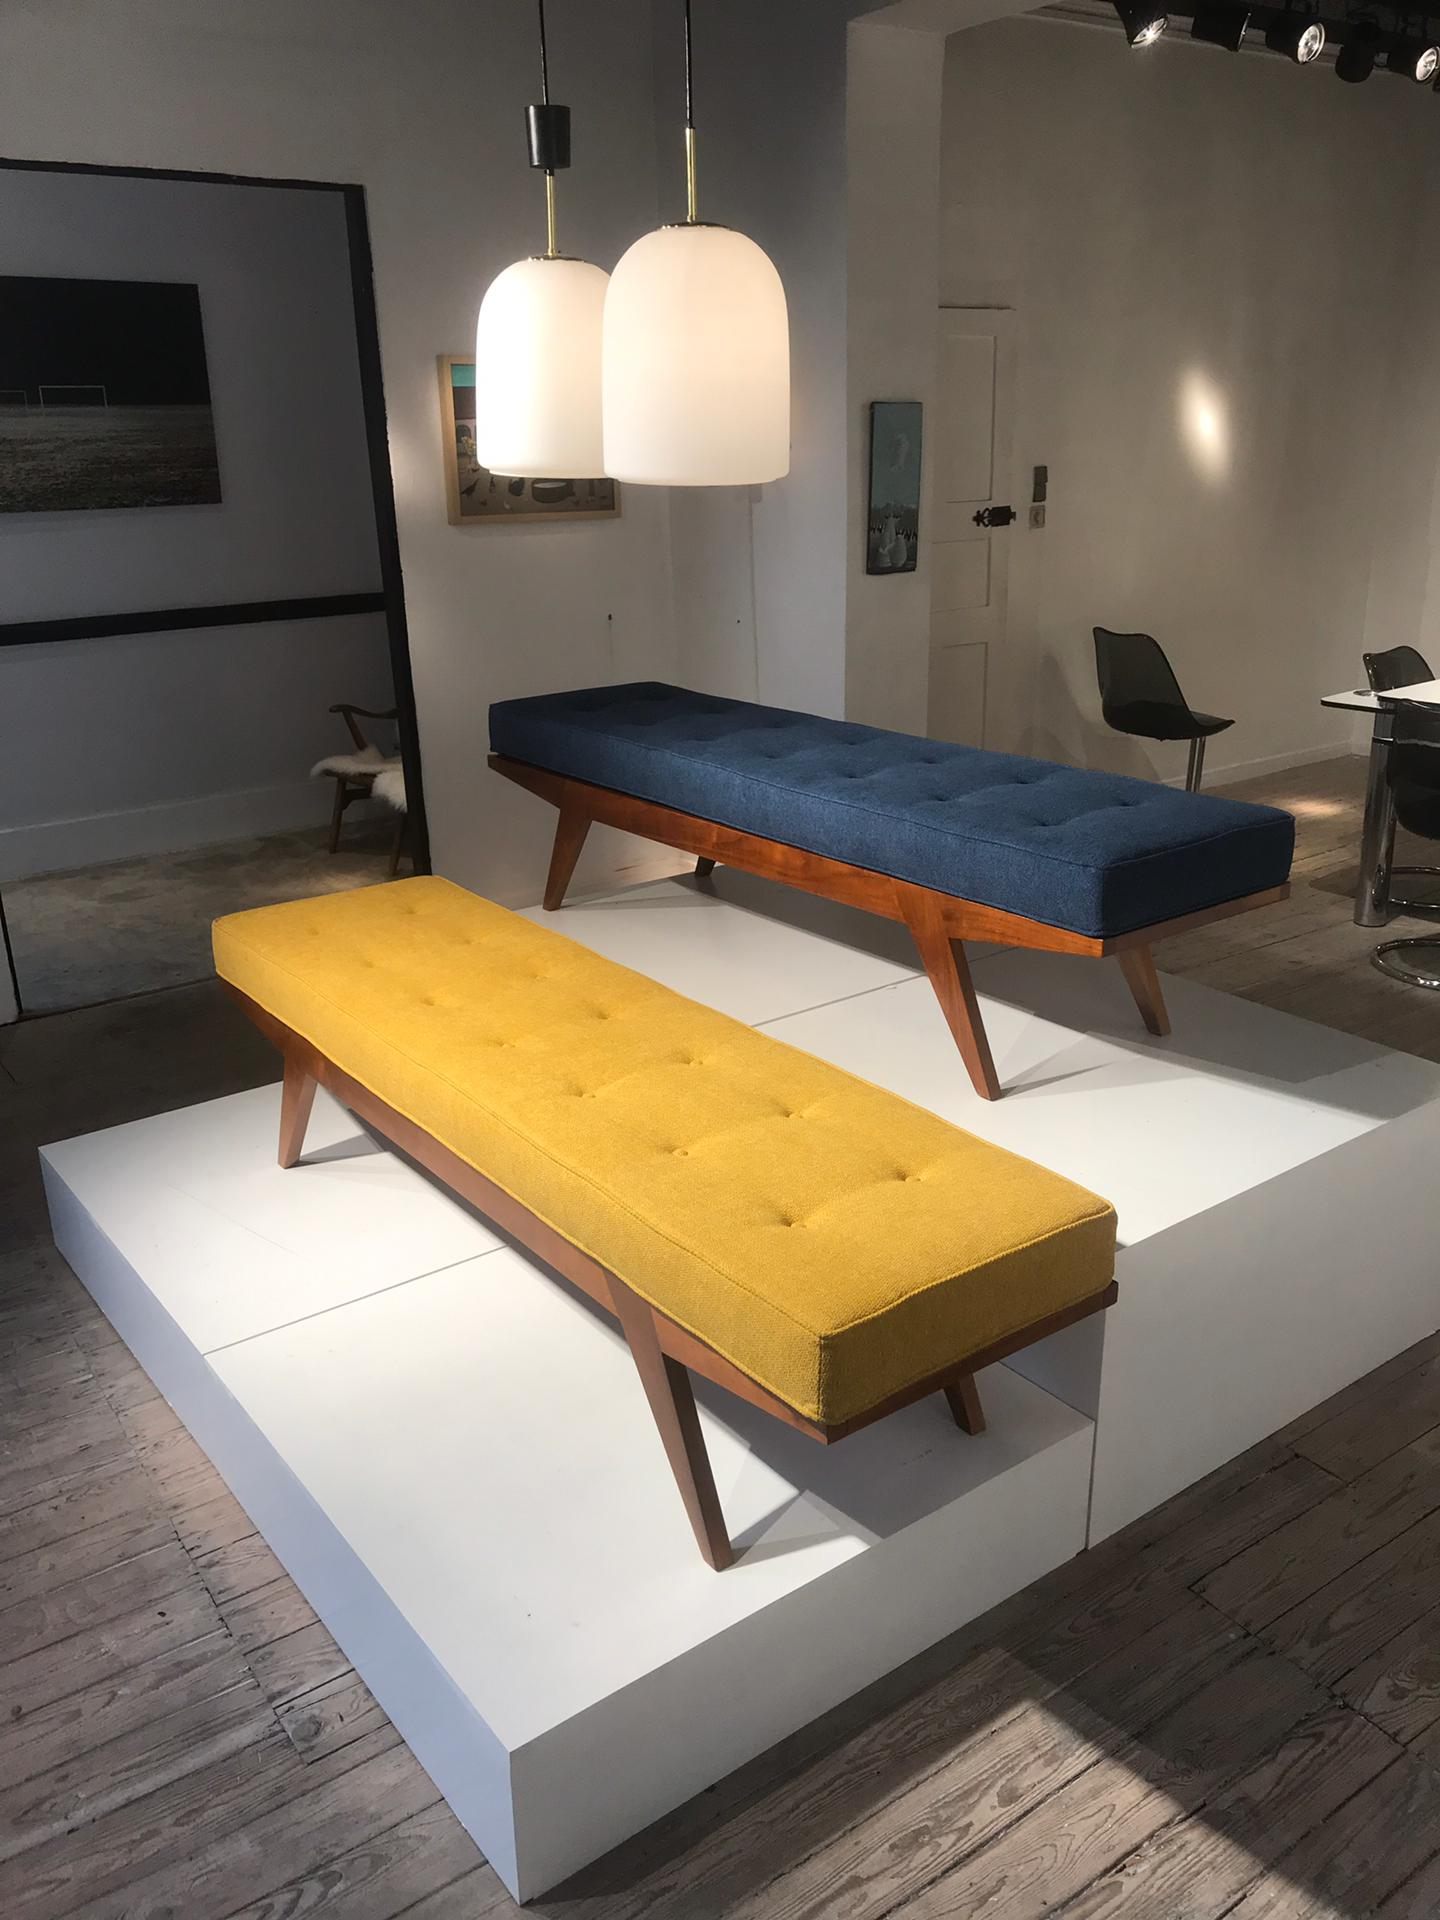 Set of 2 daybeds / benches